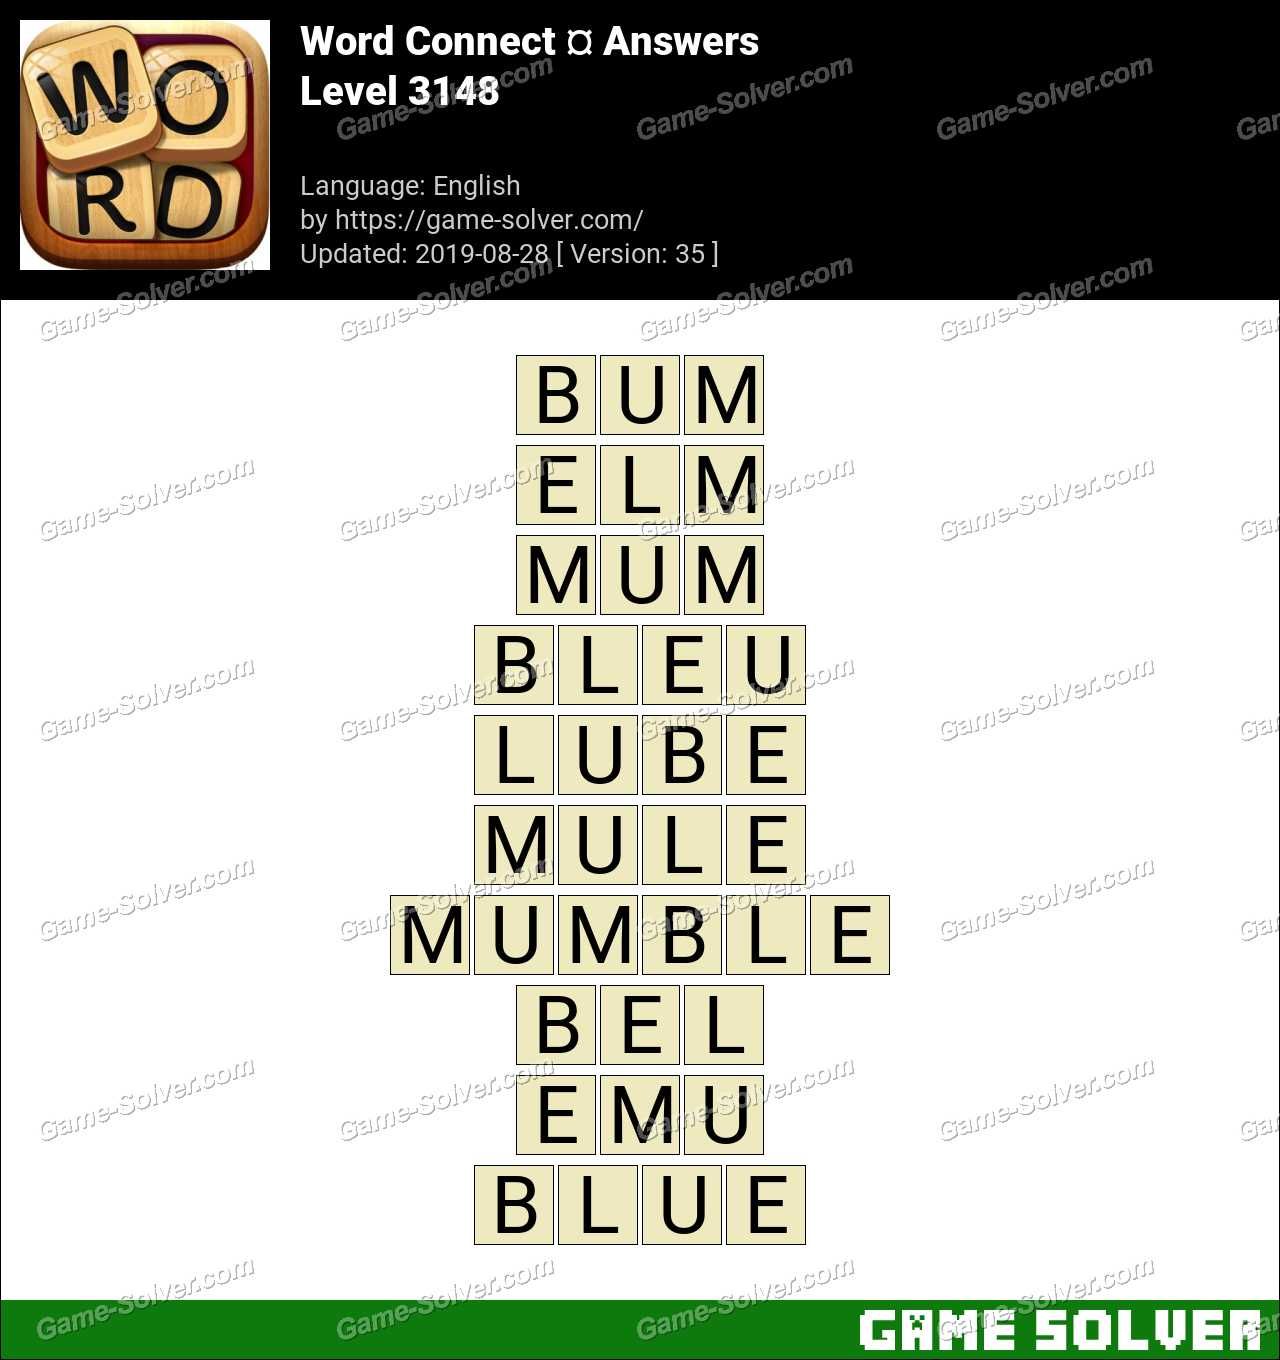 Word Connect Level 3148 Answers